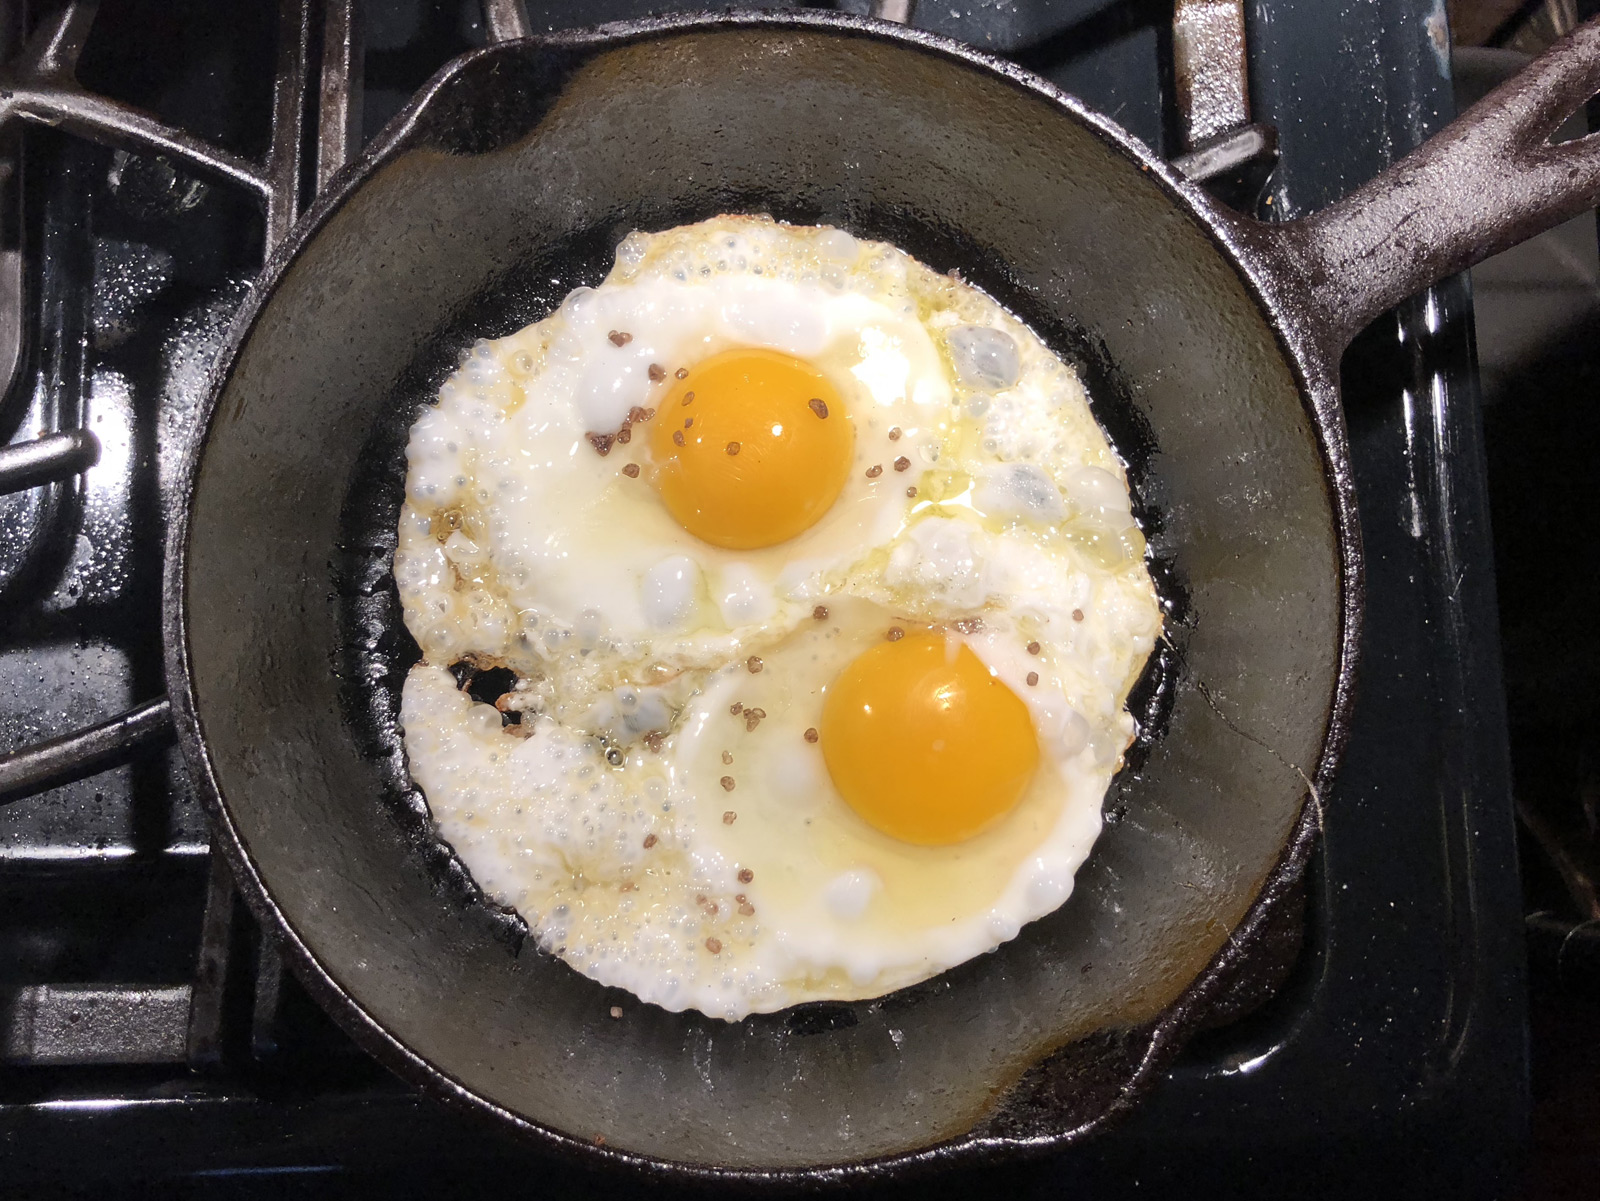 cast-iron-skillet-eggs.jpg